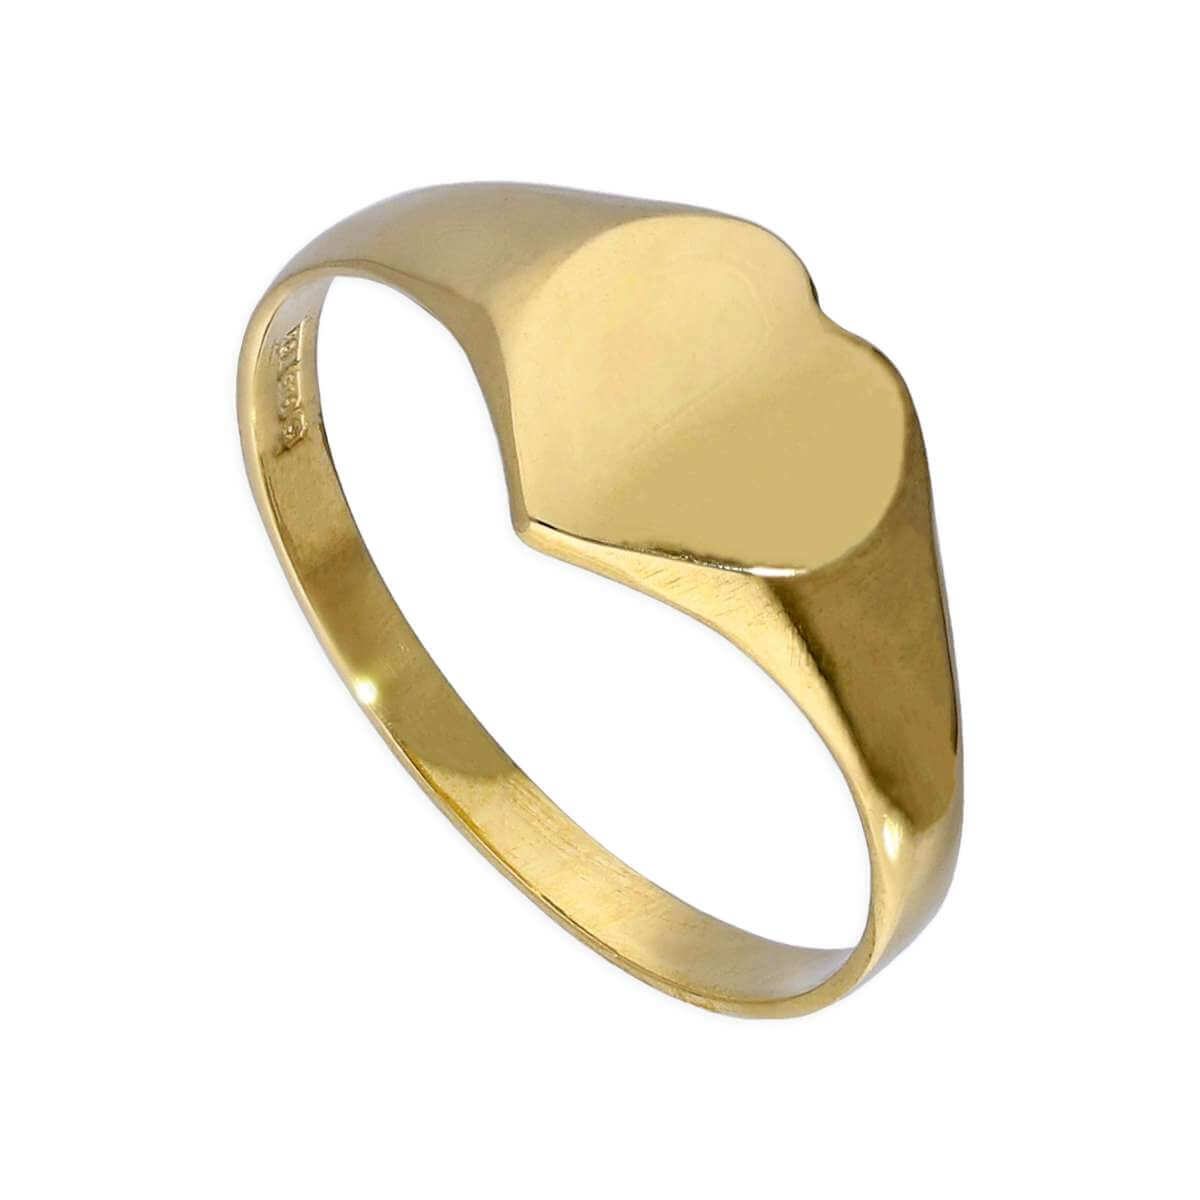 9ct Gold Engravable Teenage Heart Signet Ring Size F - M